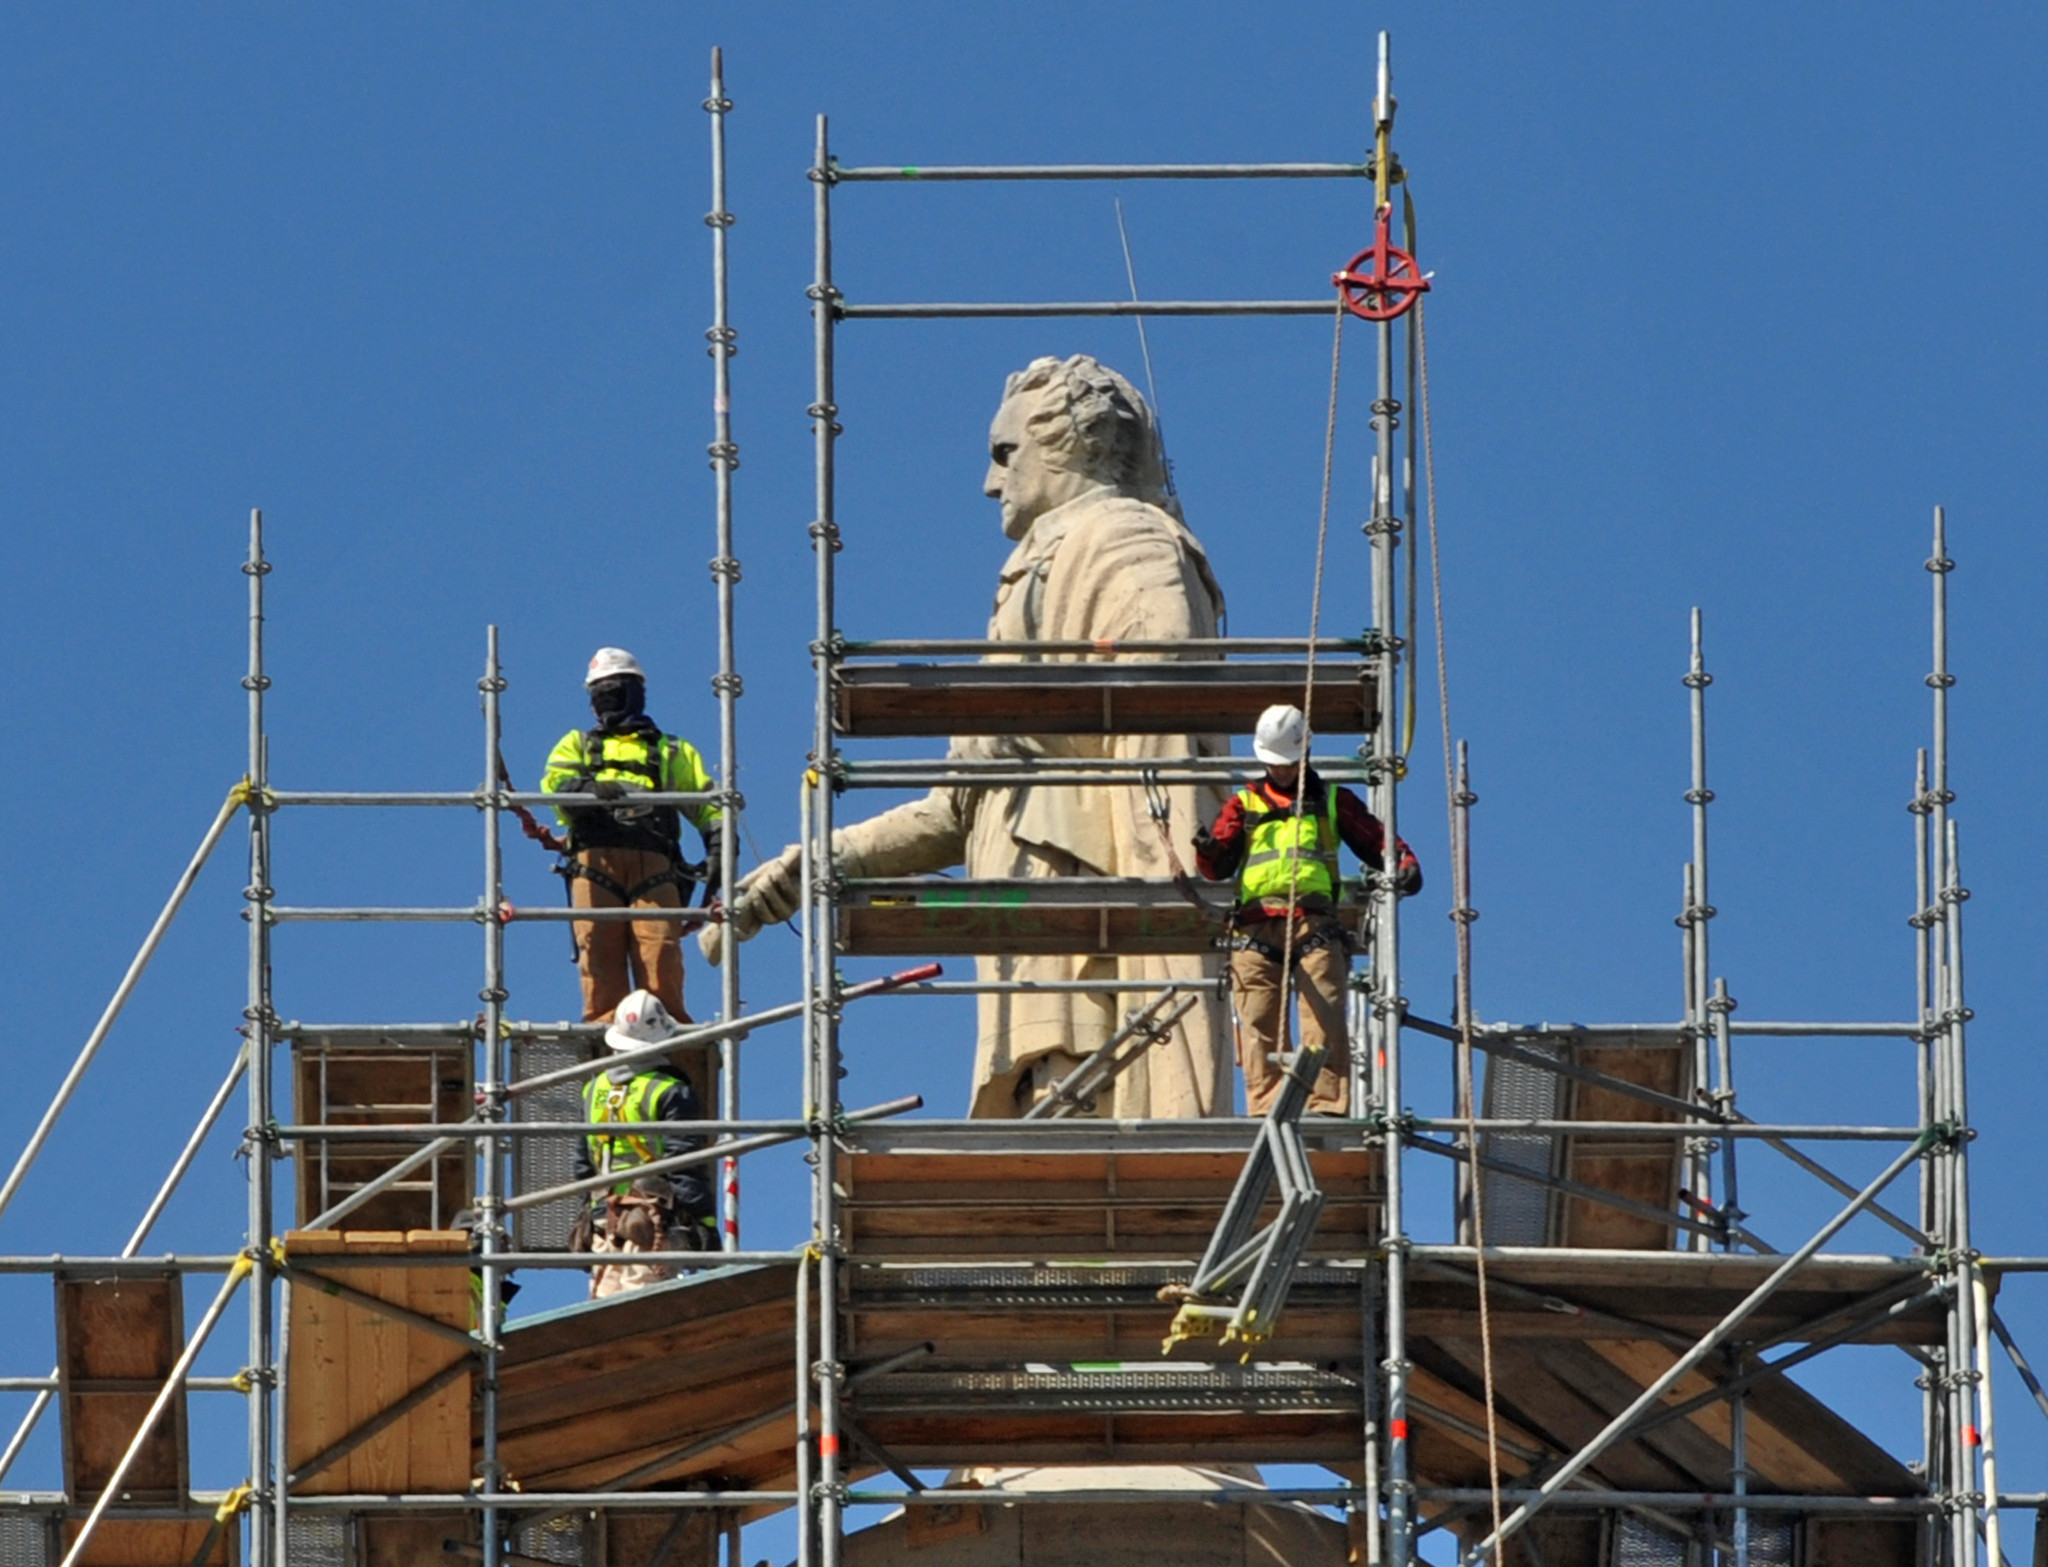 Washington Monument Restoration Disrupts Mount Vernon